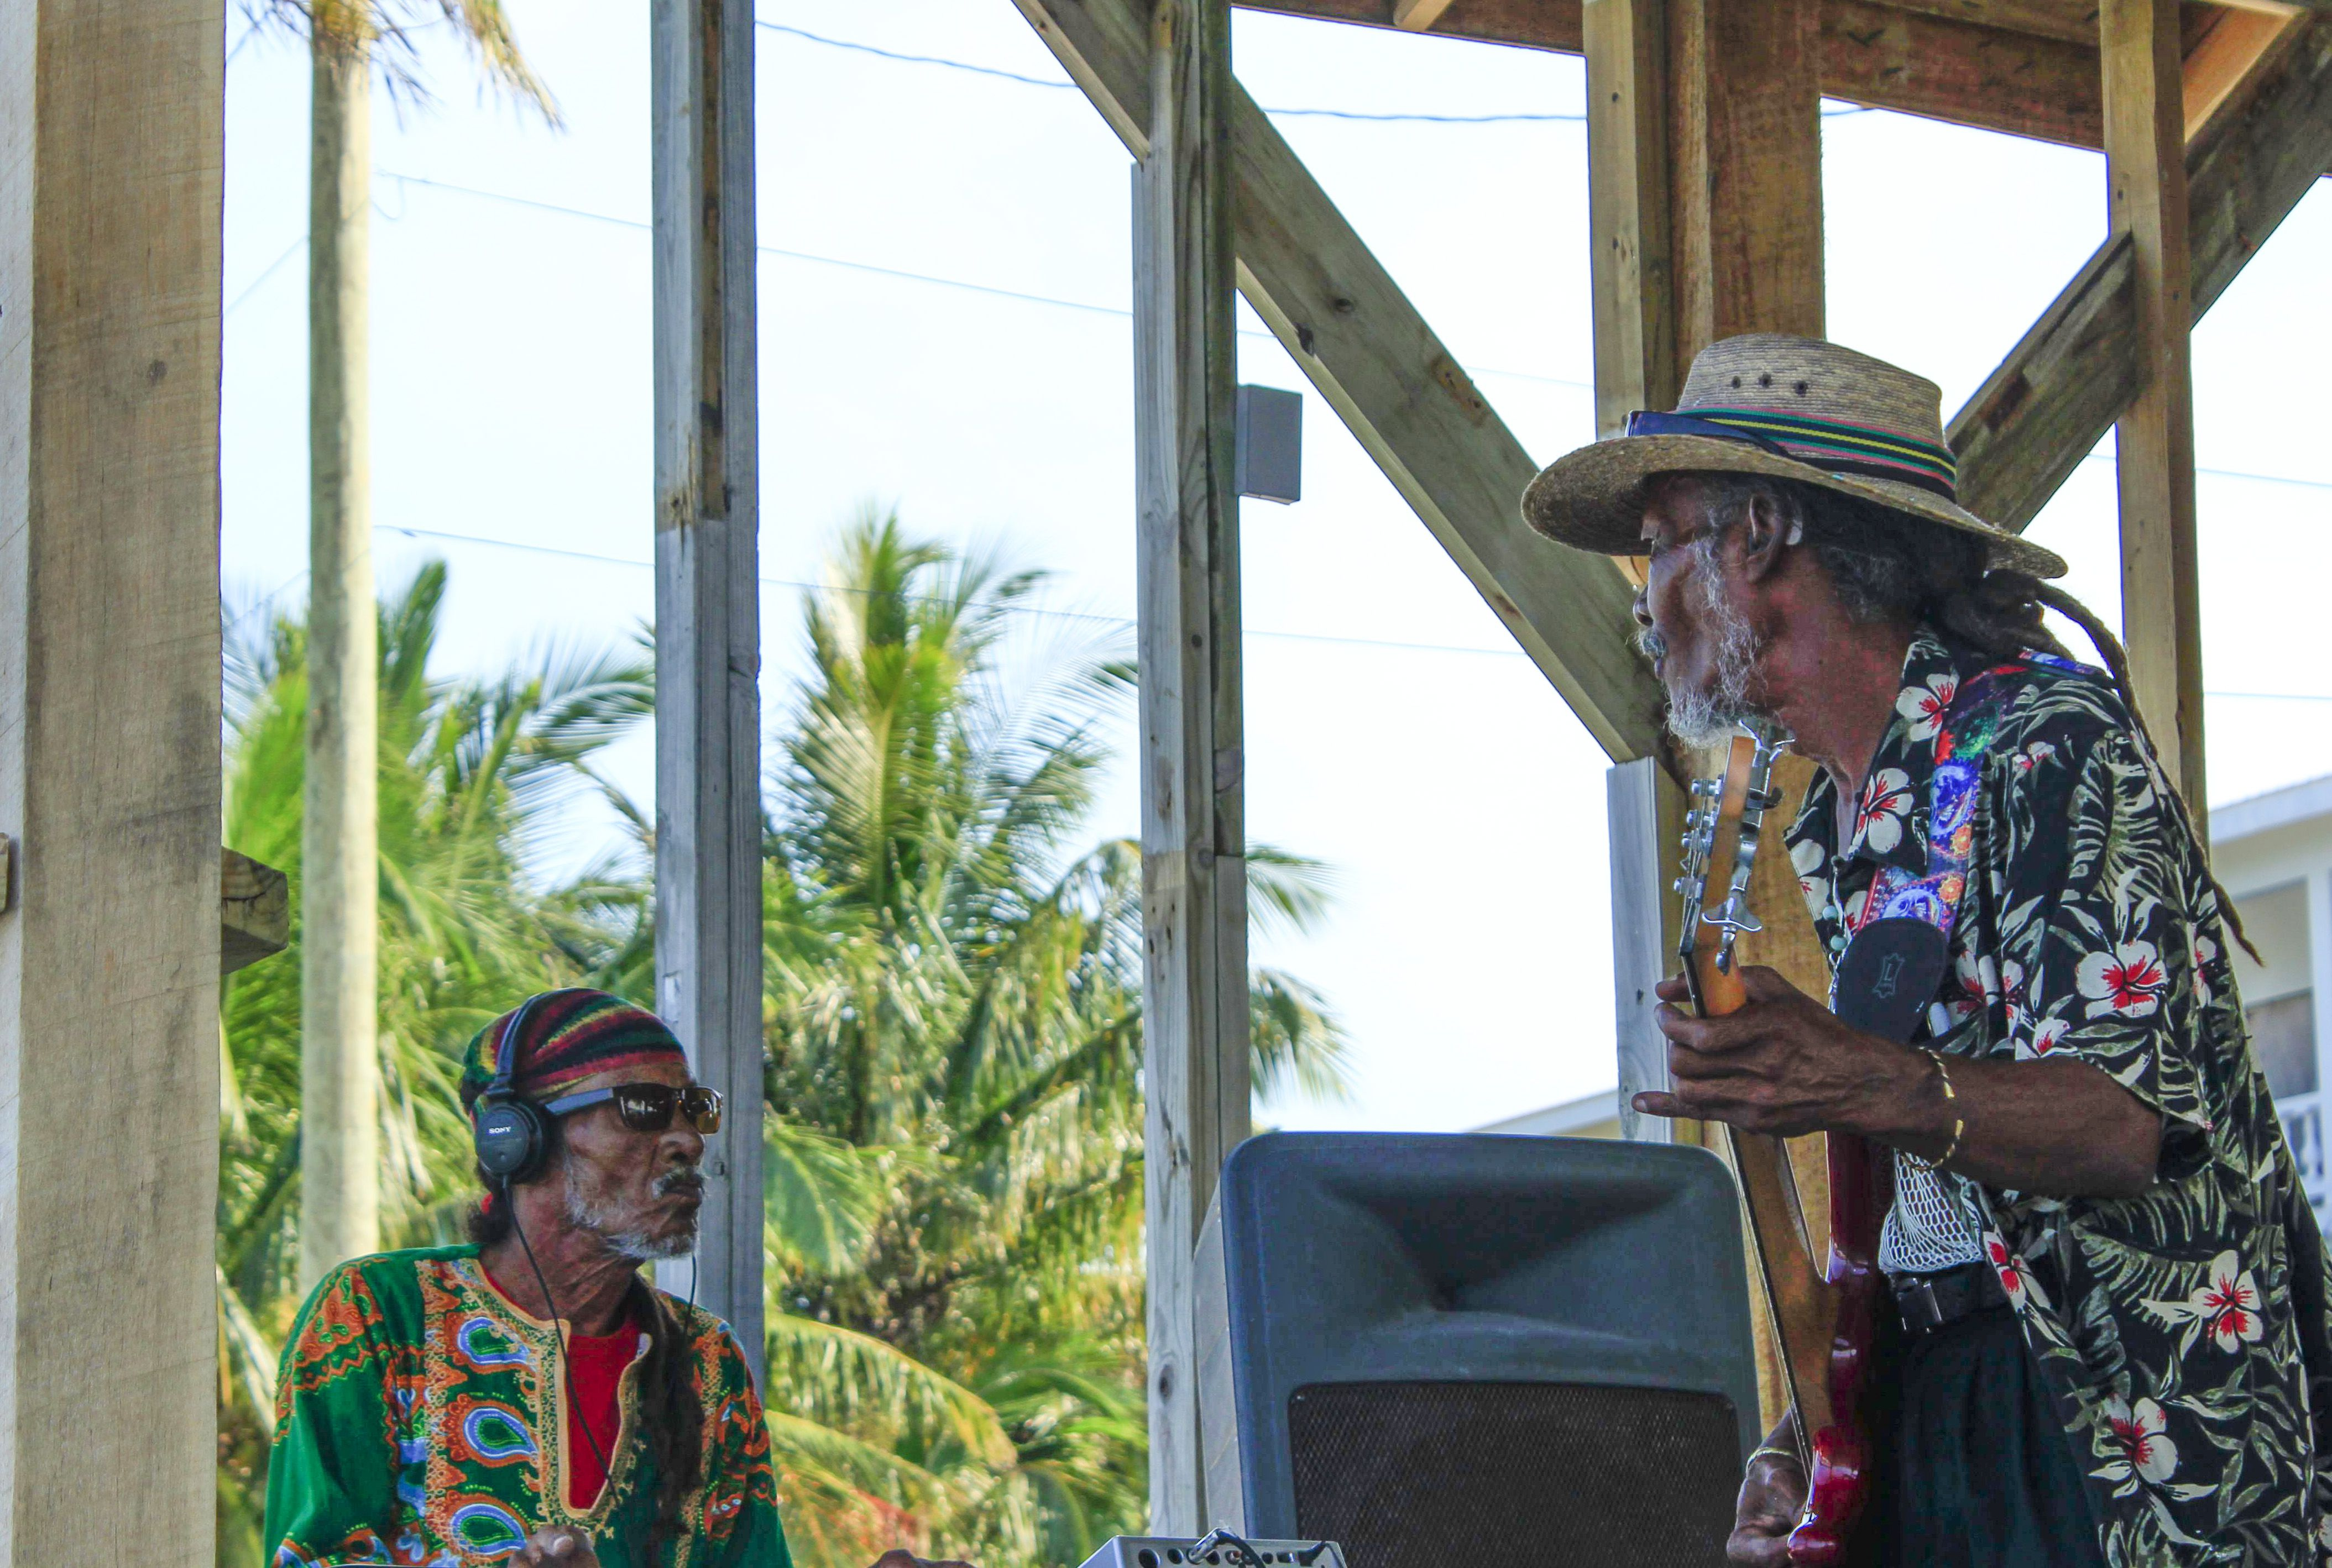 People playing island music in the Cayes in Belize